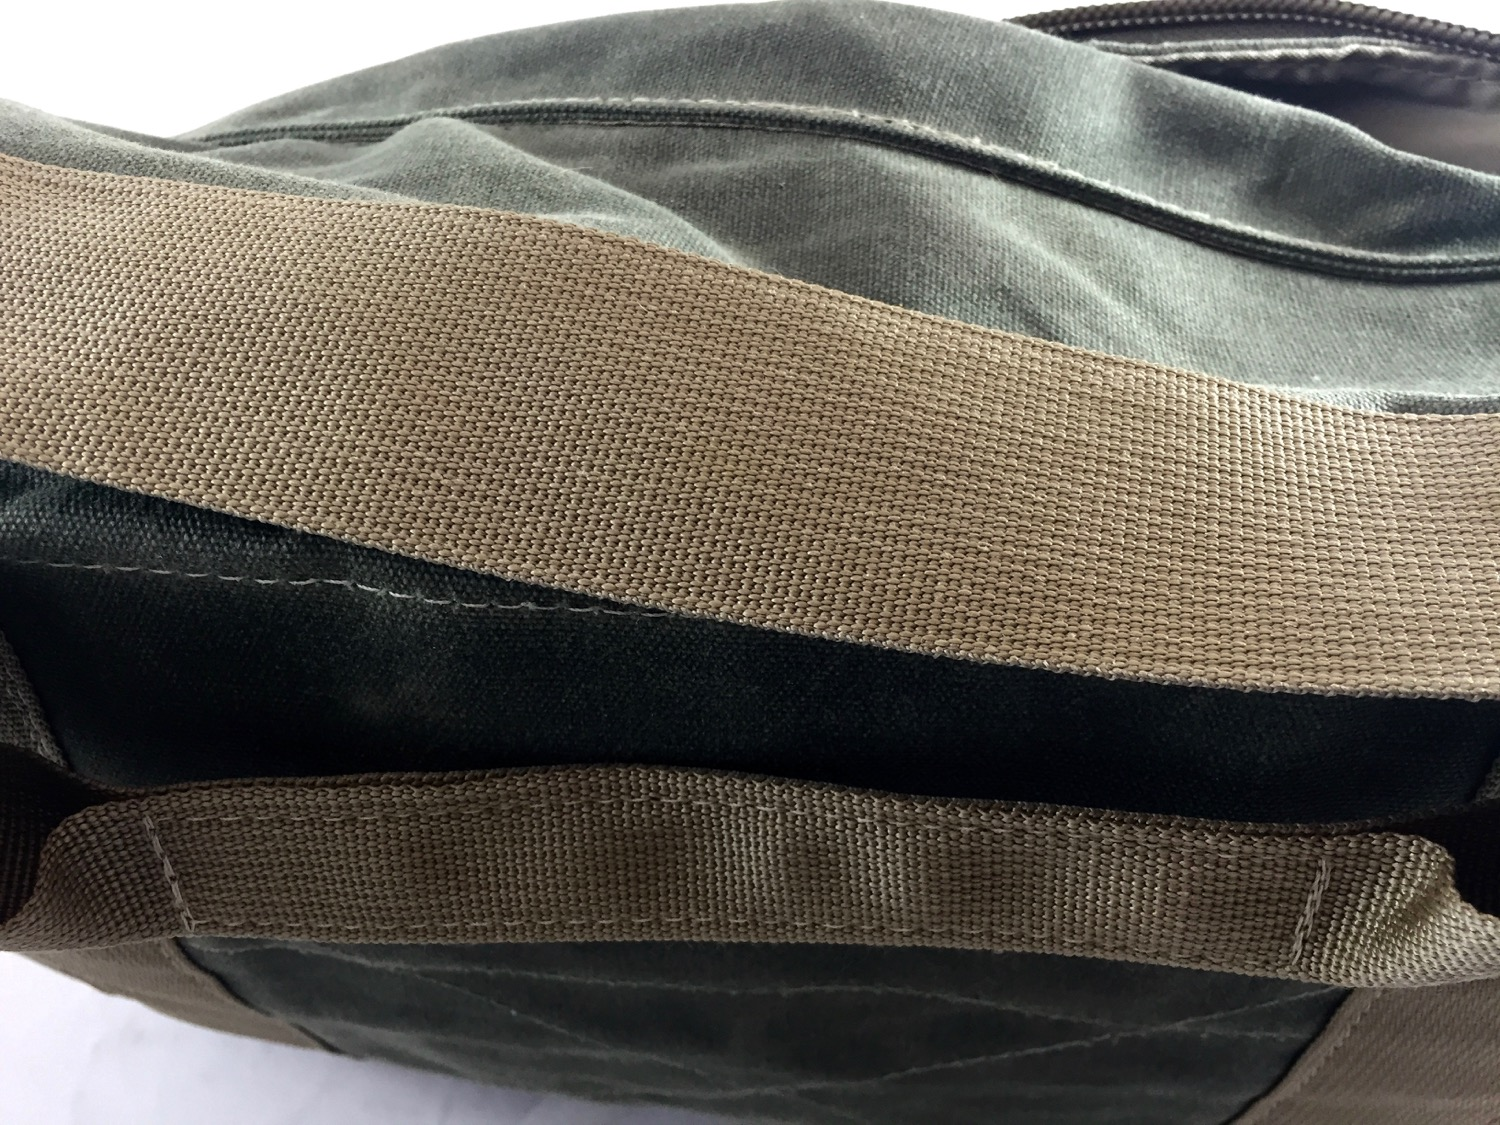 Carry strap, and off-body carry handle